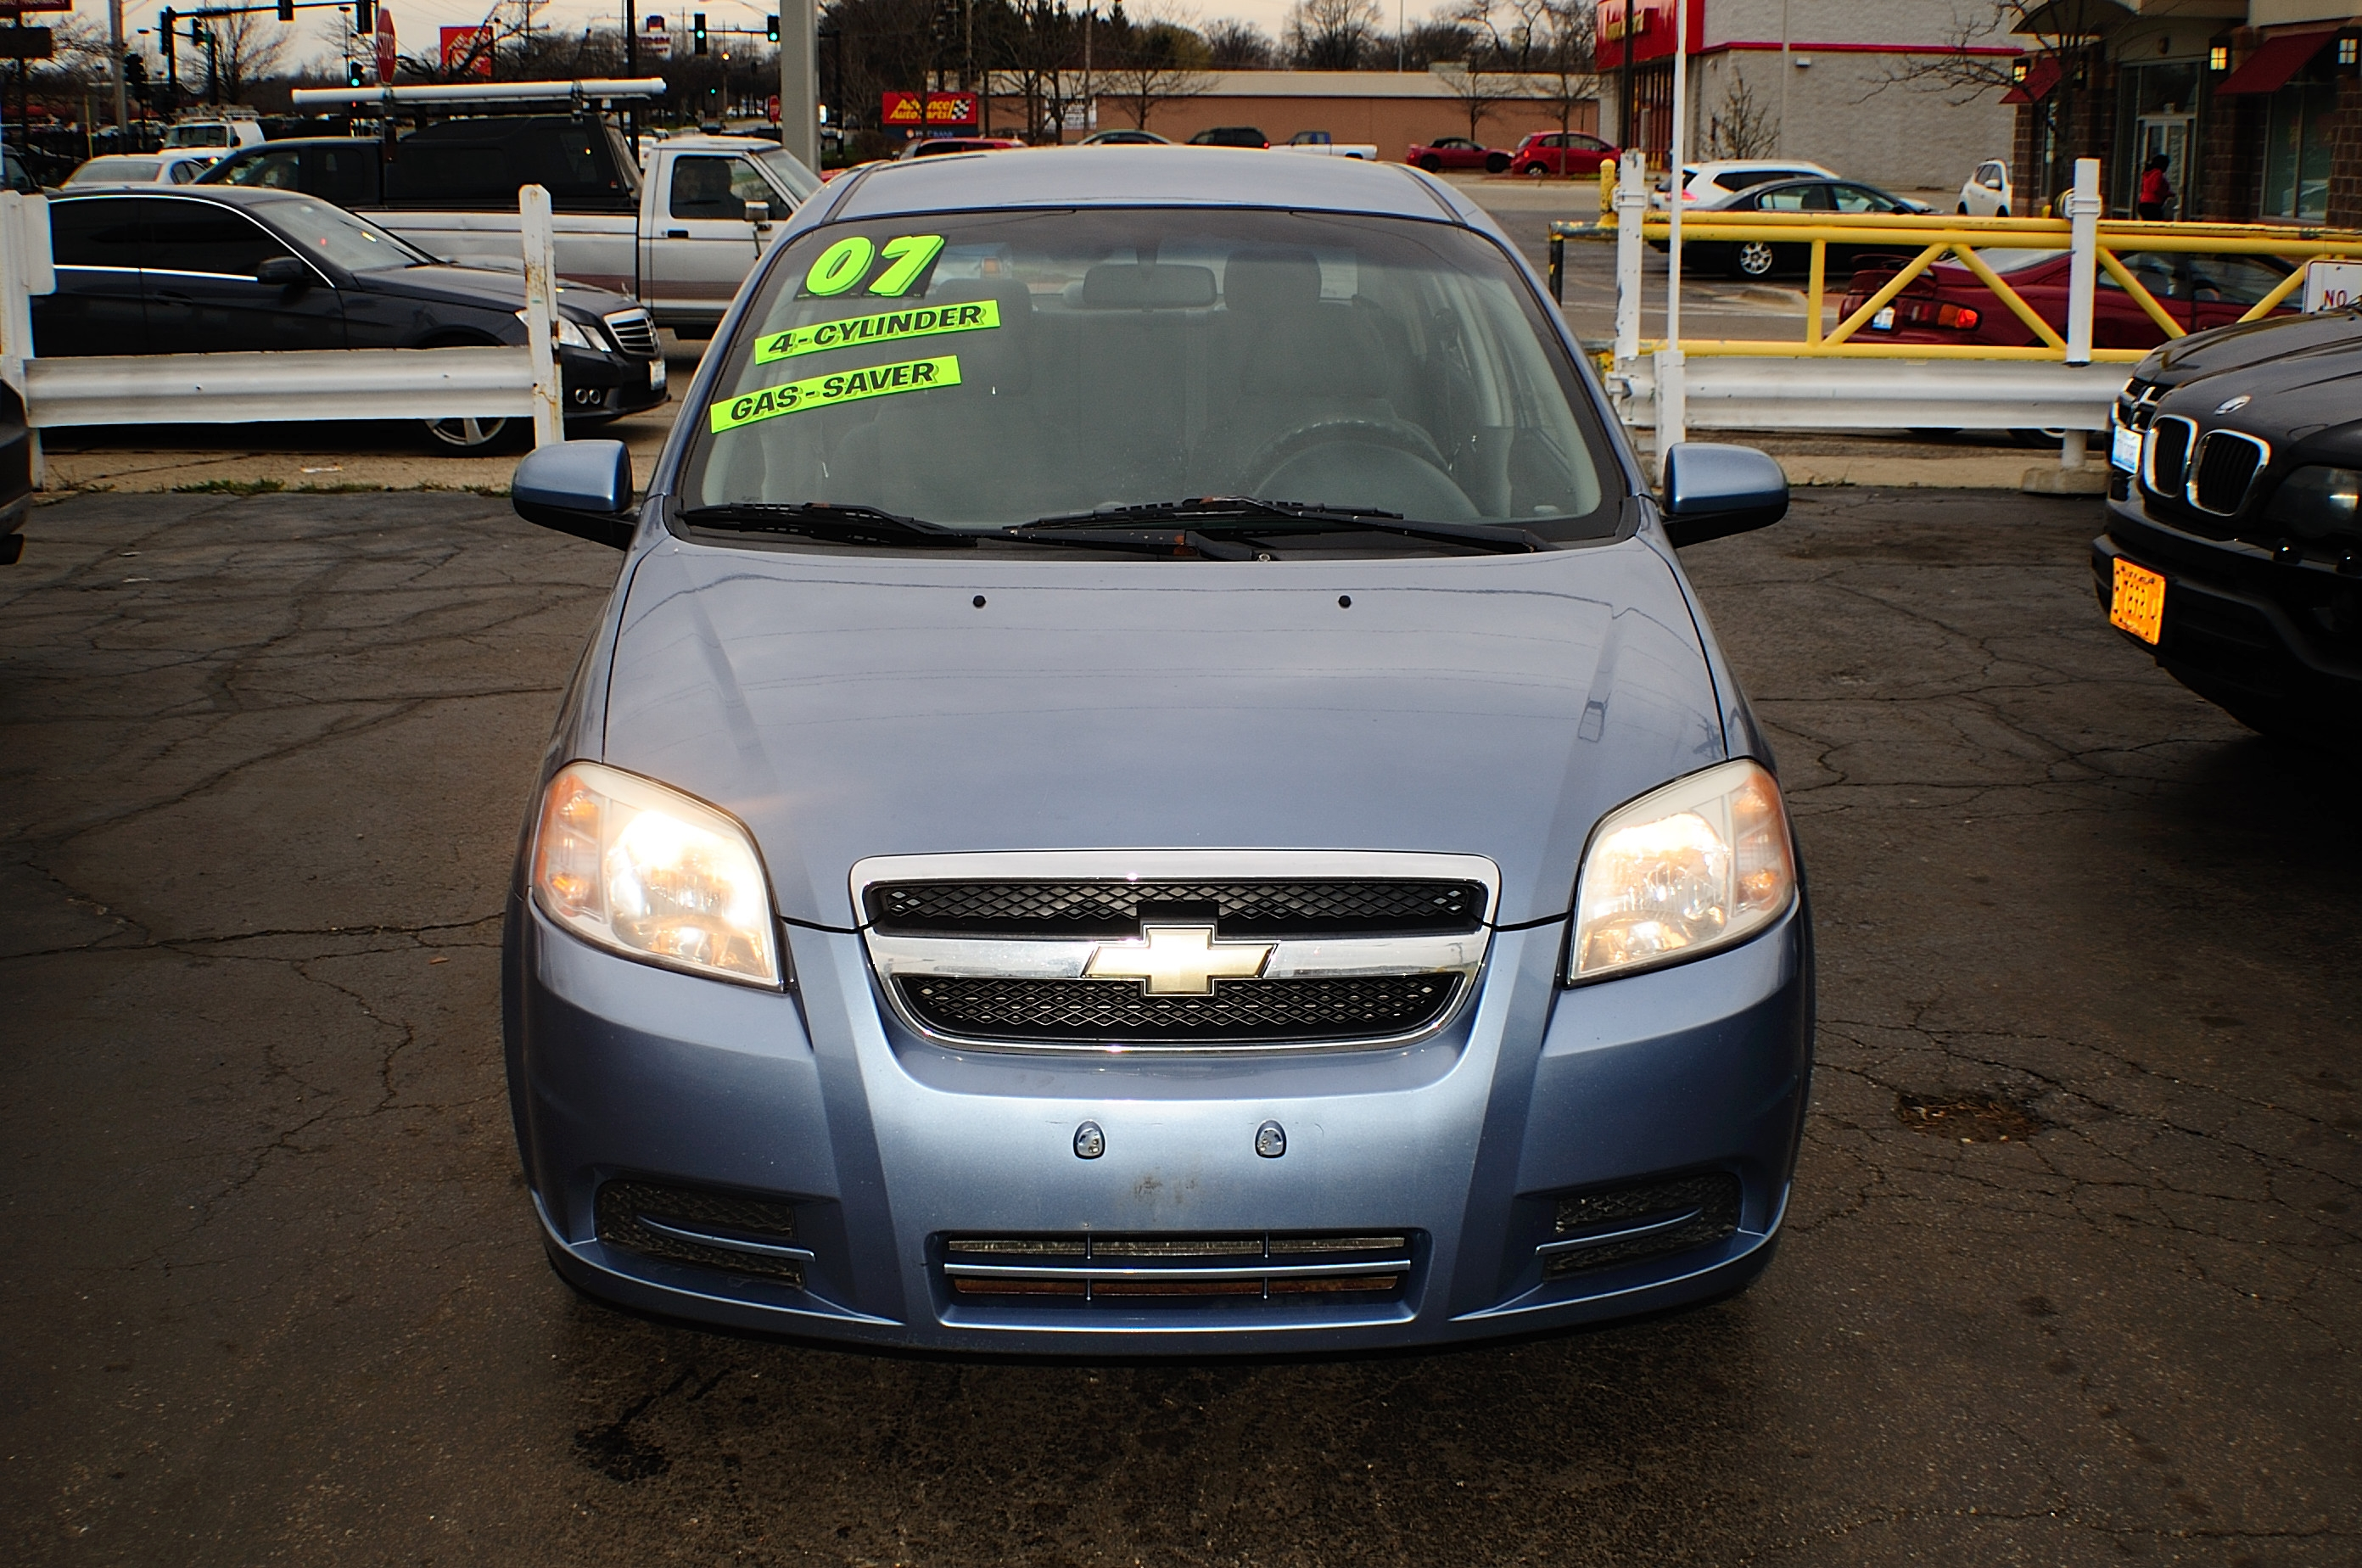 2007 Chevrolet Aveo LS 4Dr blue sedan sale used car Kenosha Mchenry Bannockburn Barrington